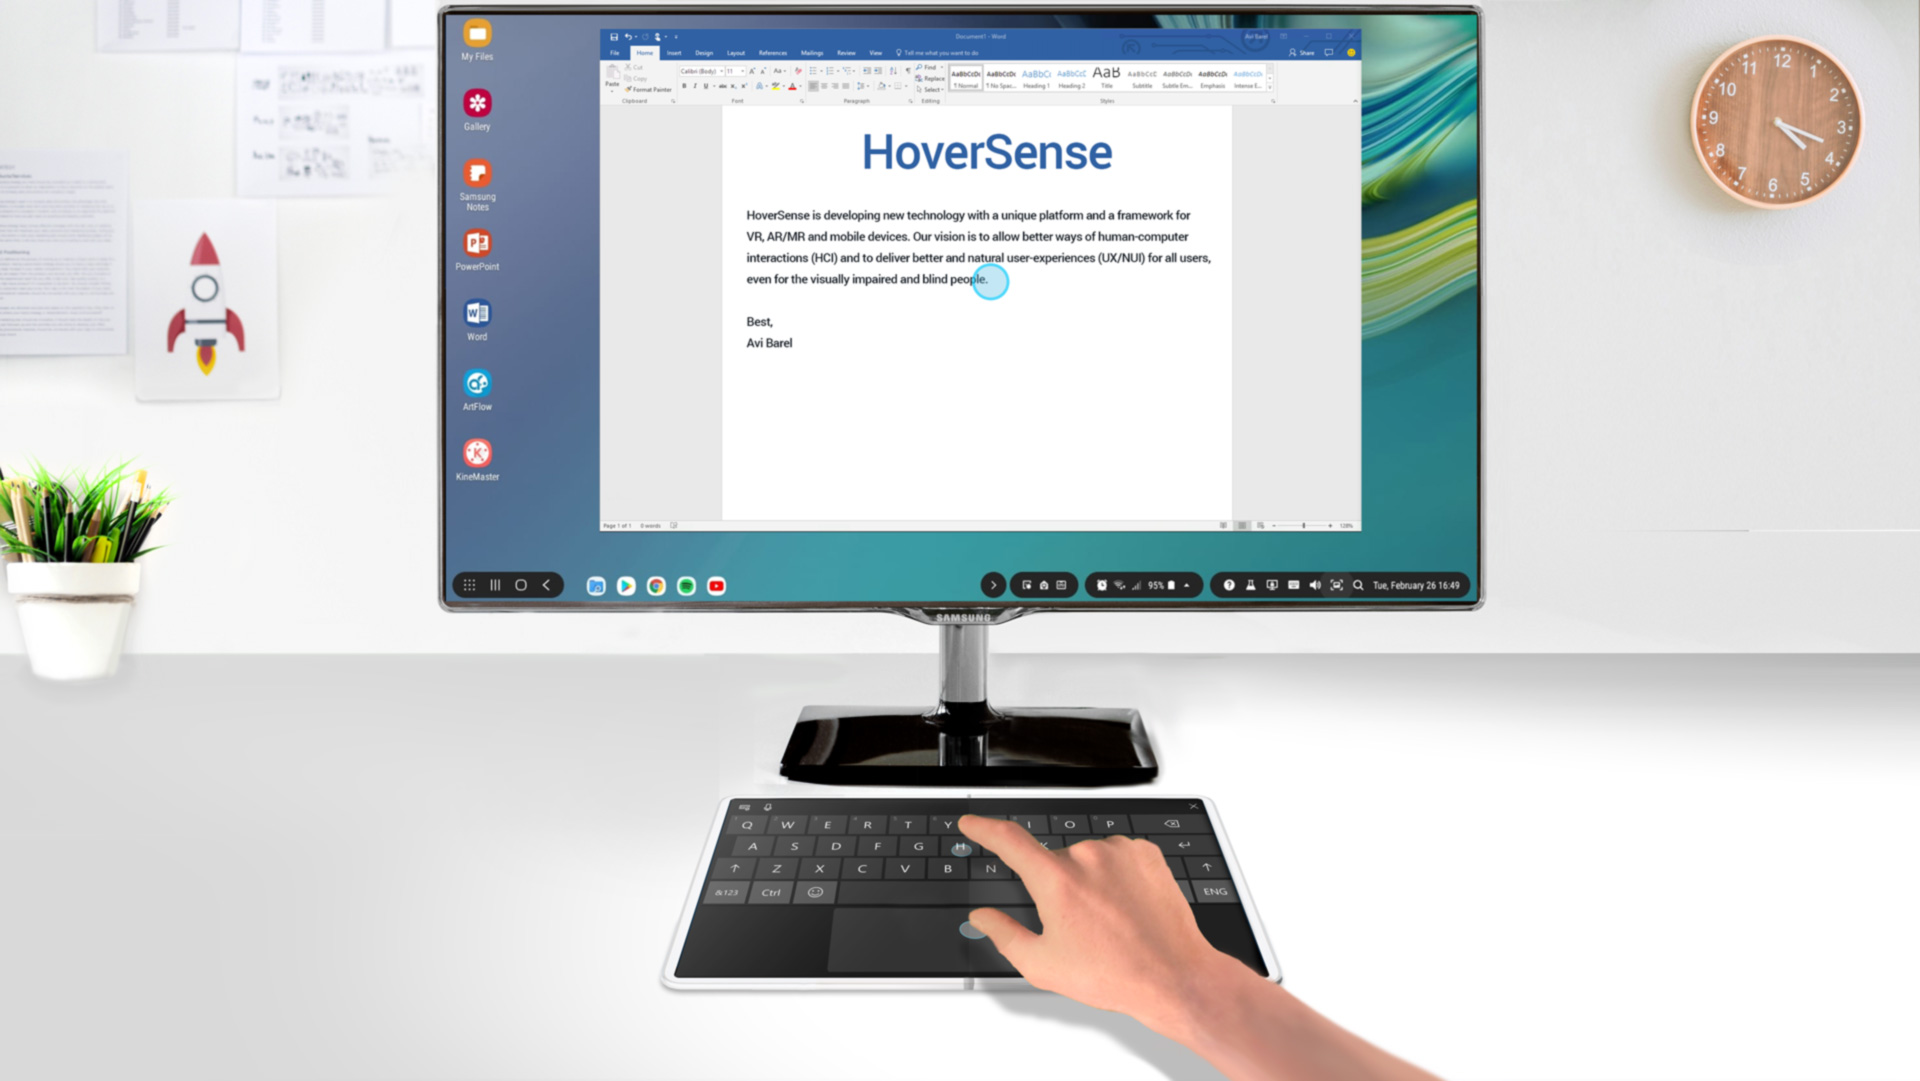 Dim your device's screen (on DeX mode) and use it as a tactile keyboard, or as an advanced Multi-Hover Touchpad.